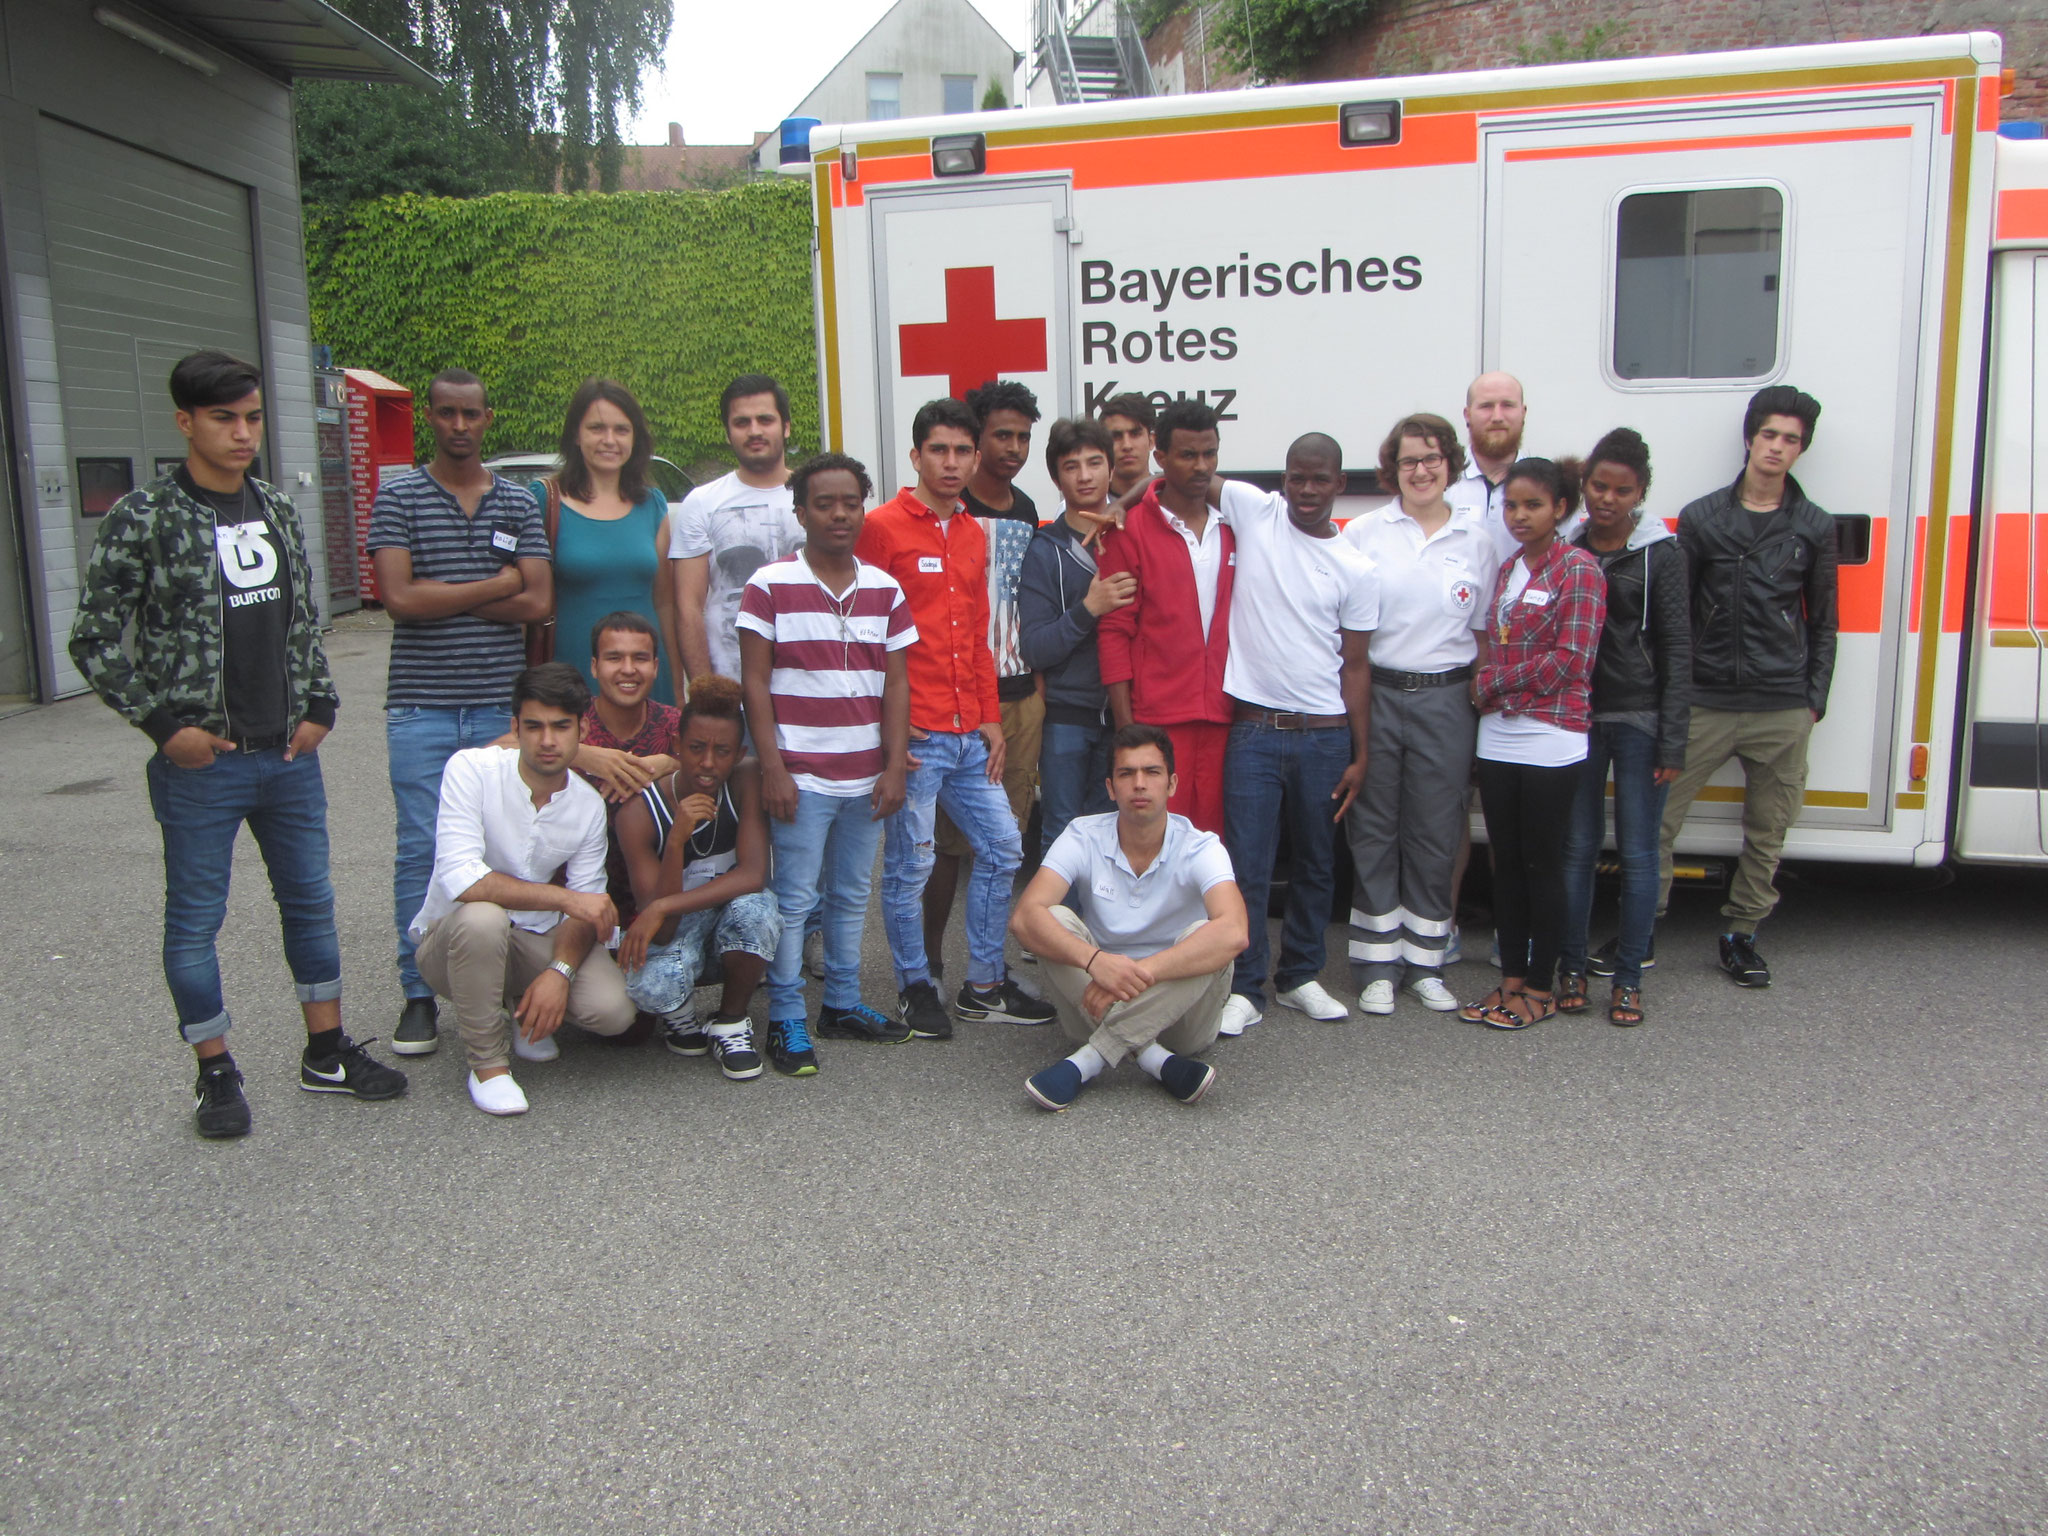 At the end of the course, all 17 students were given their first aid certificate. We look forward to the next course!